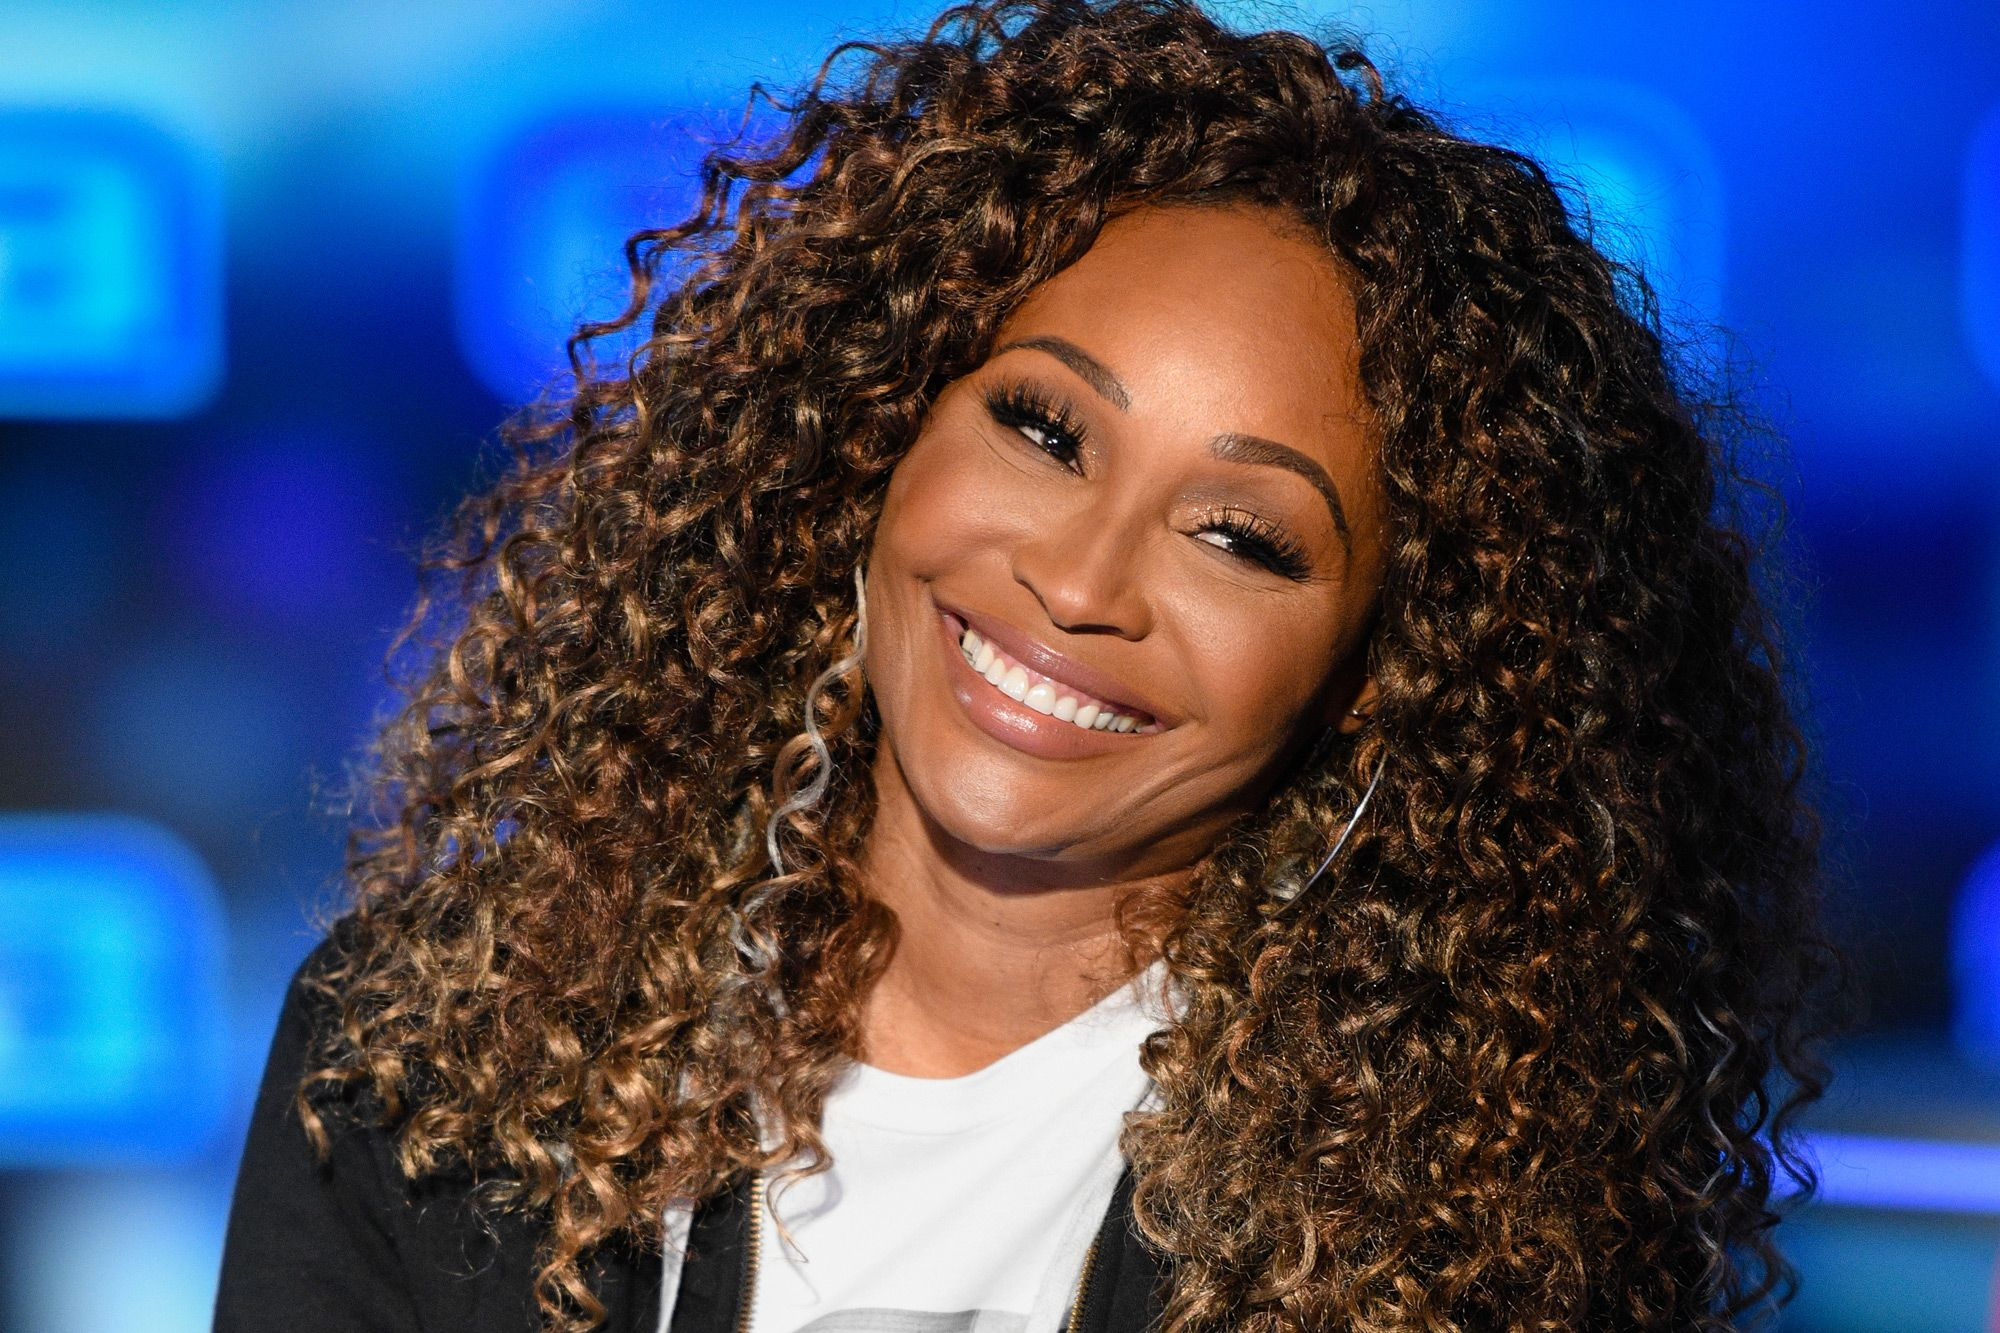 cynthia-bailey-troll-tells-her-to-lose-some-weight-and-she-fires-back-my-fiance-aint-complaining